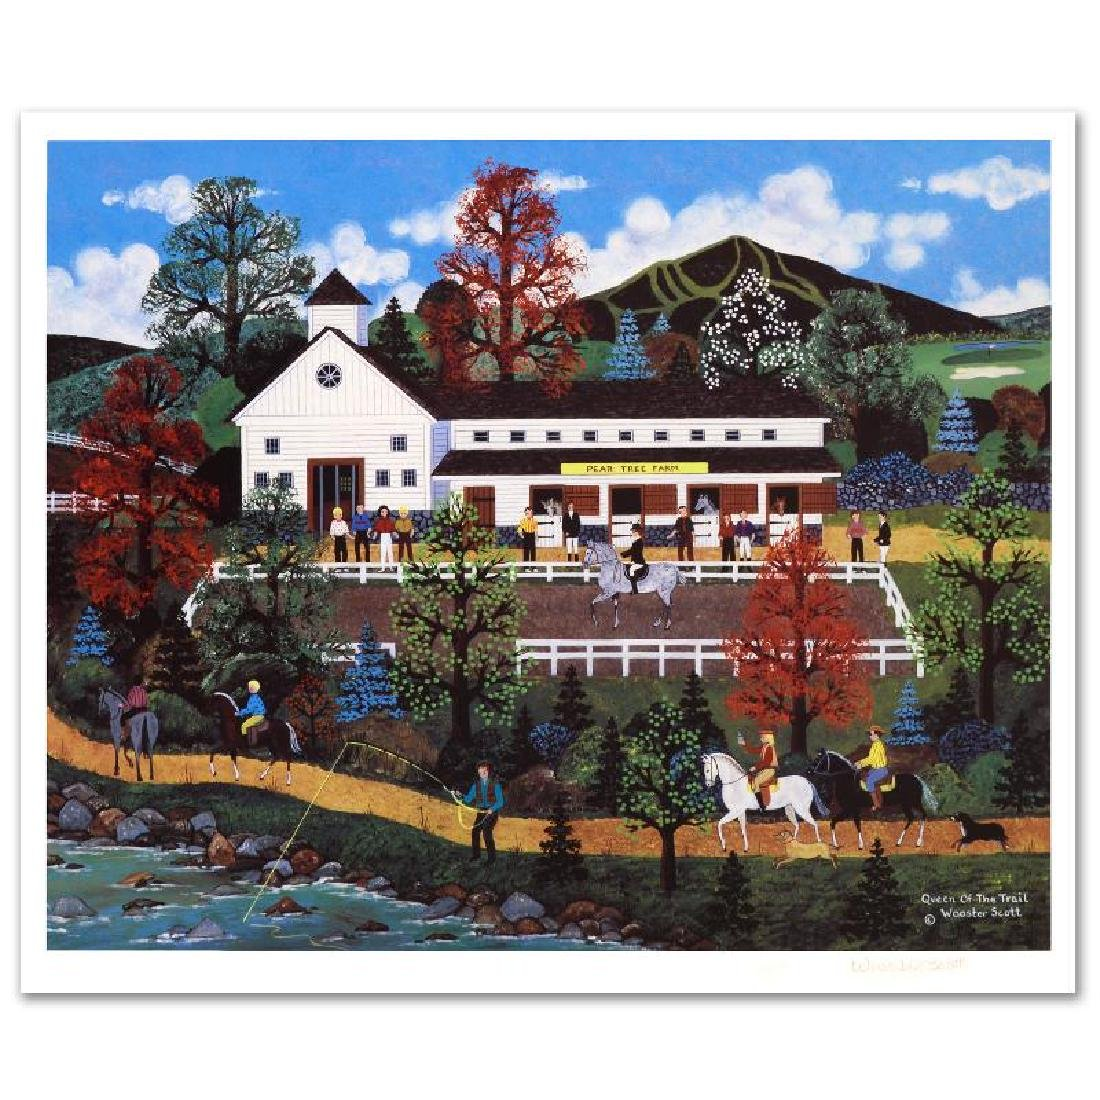 Queen of the Trail Limited Edition Lithograph by Jane